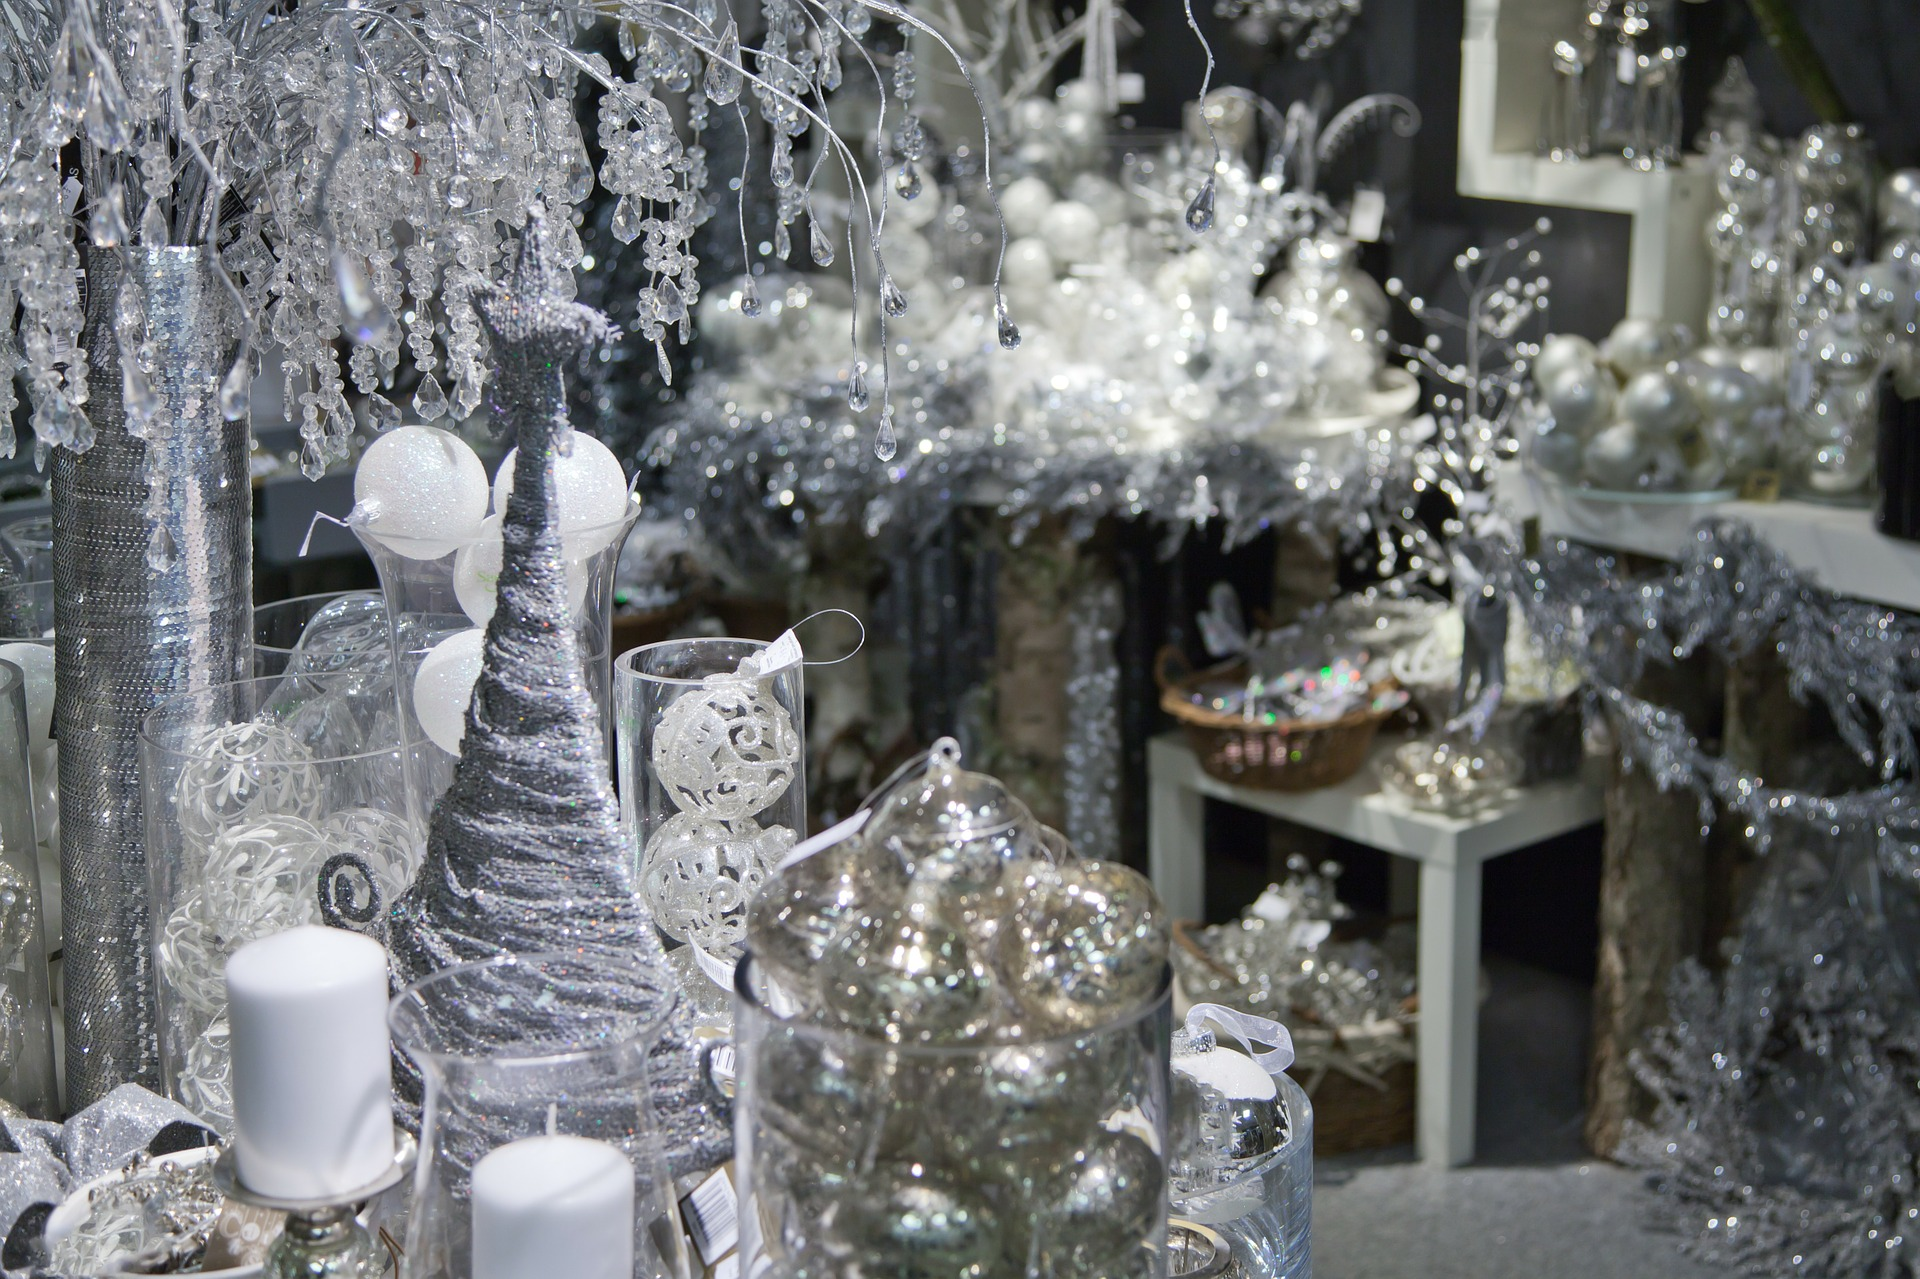 winter wonderland - Winter Wonderland Christmas Decorating Ideas